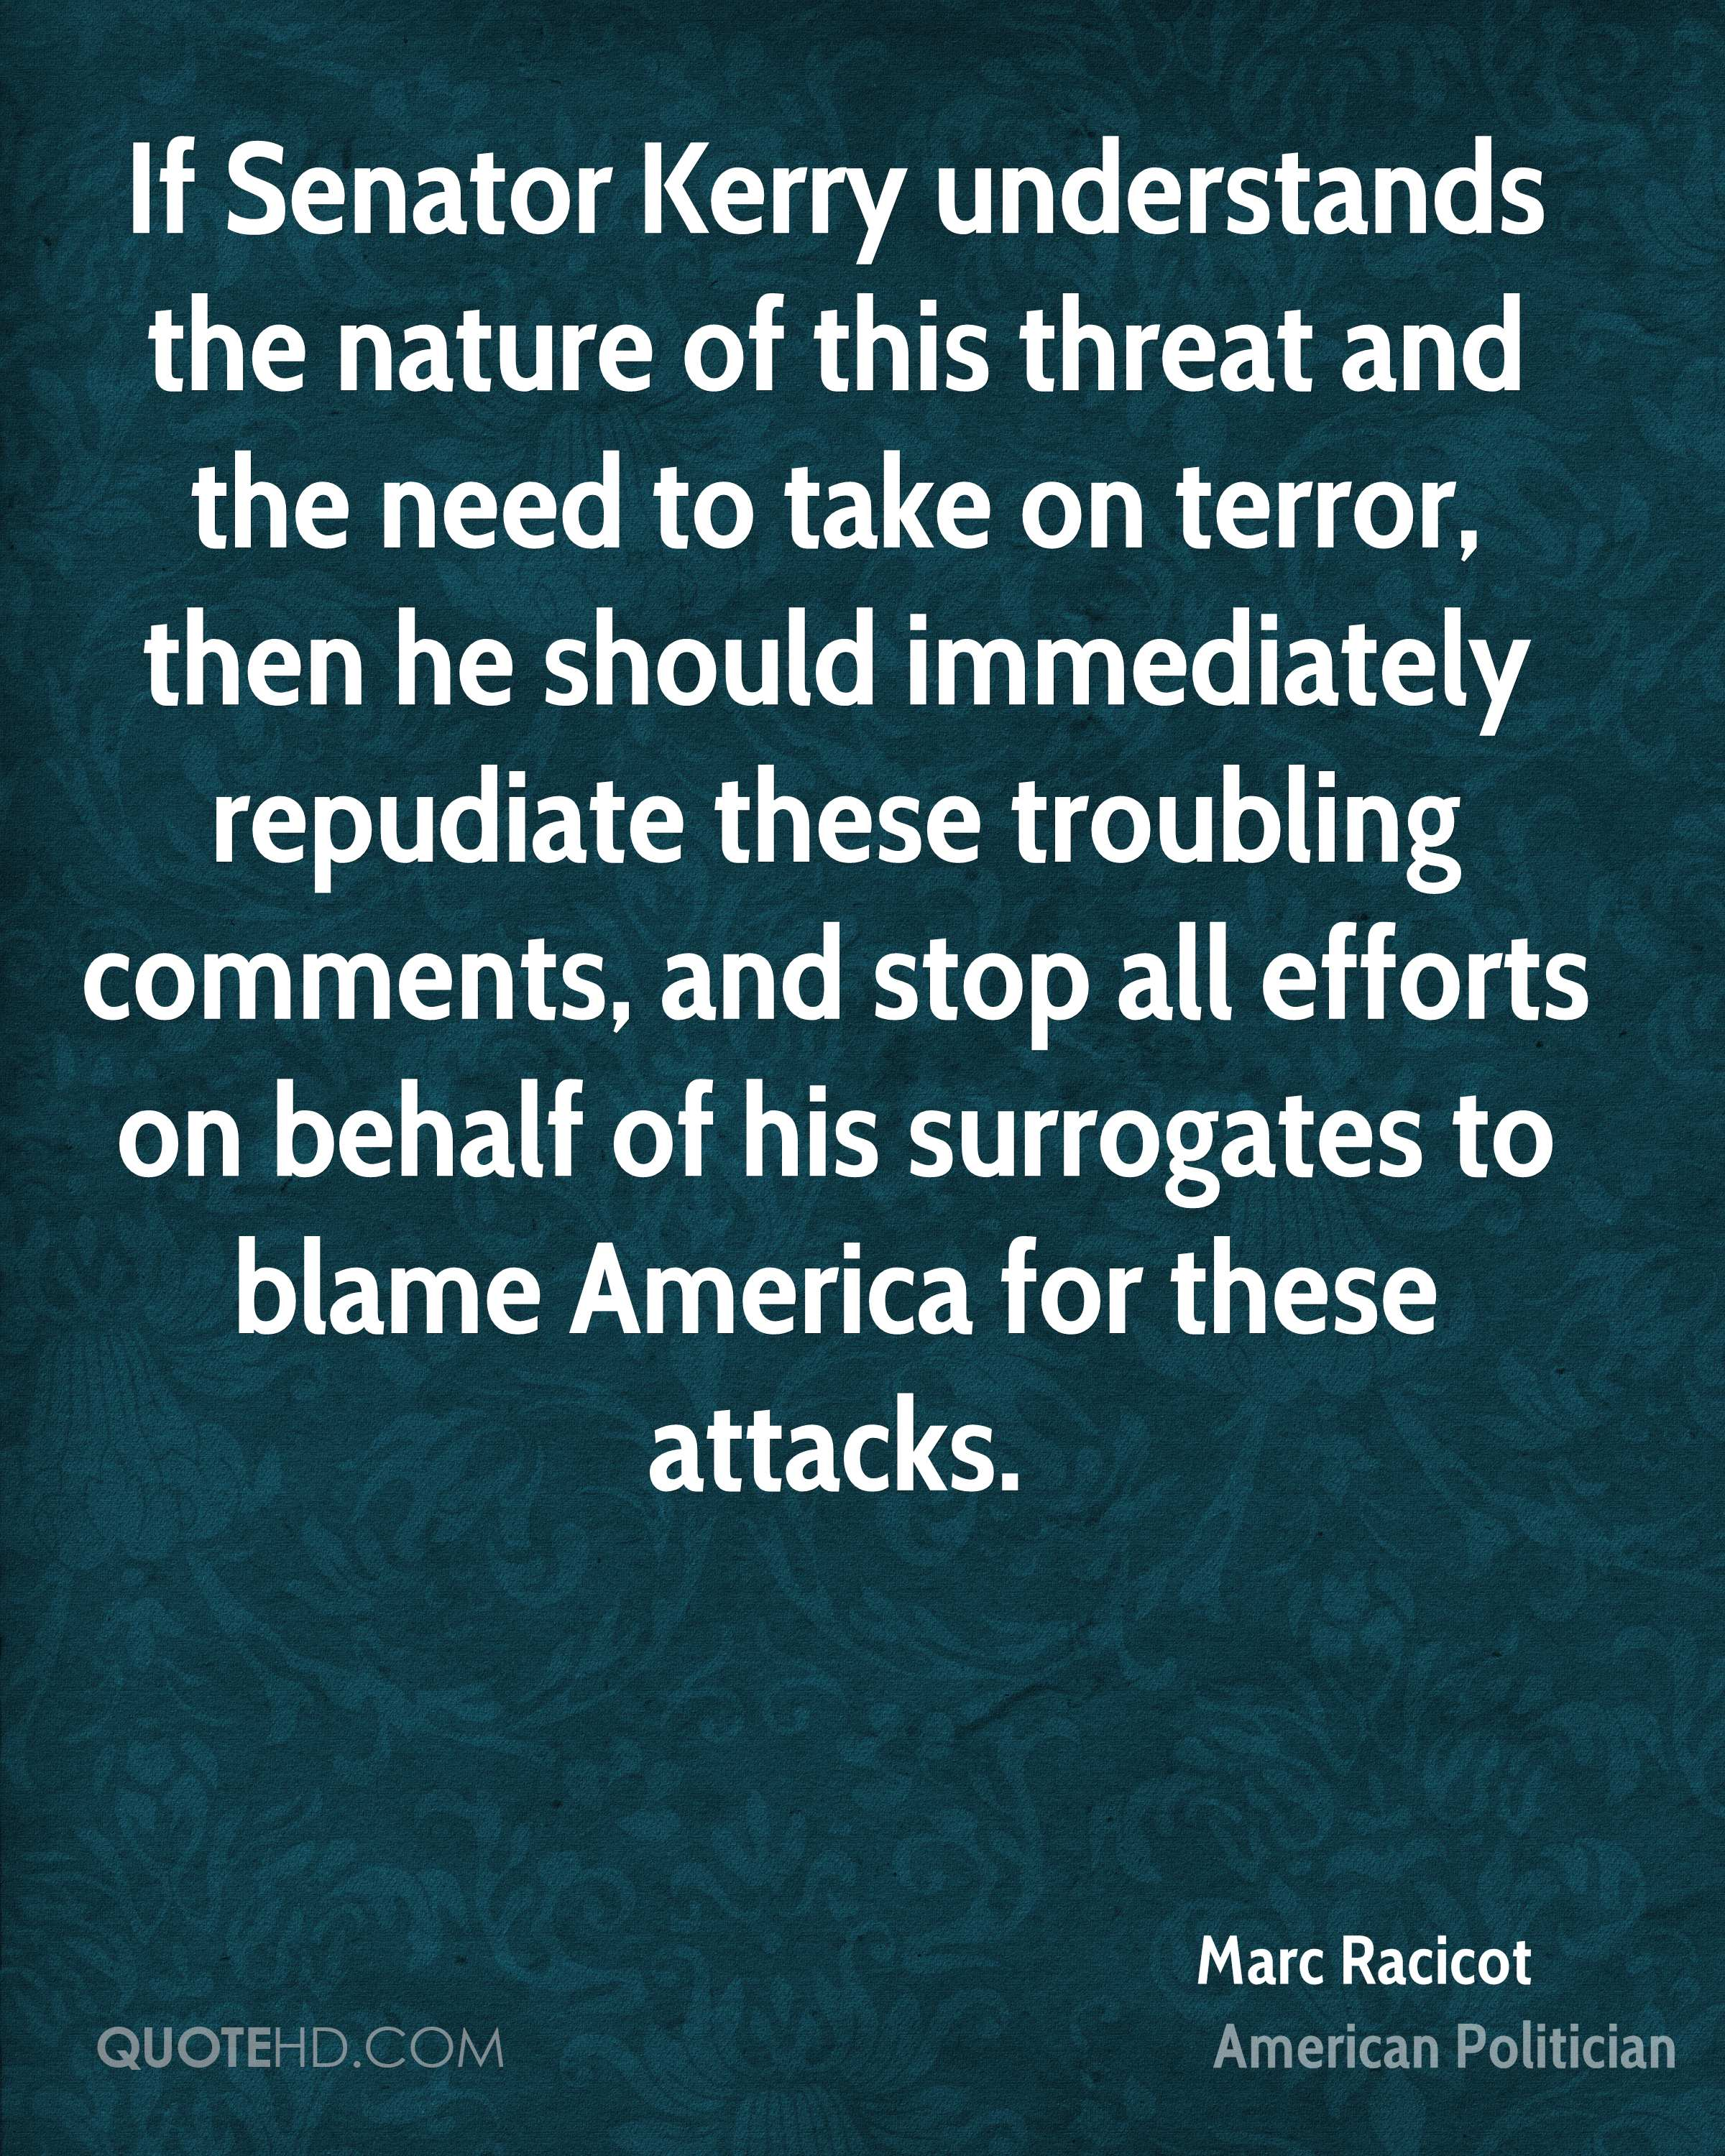 If Senator Kerry understands the nature of this threat and the need to take on terror, then he should immediately repudiate these troubling comments, and stop all efforts on behalf of his surrogates to blame America for these attacks.